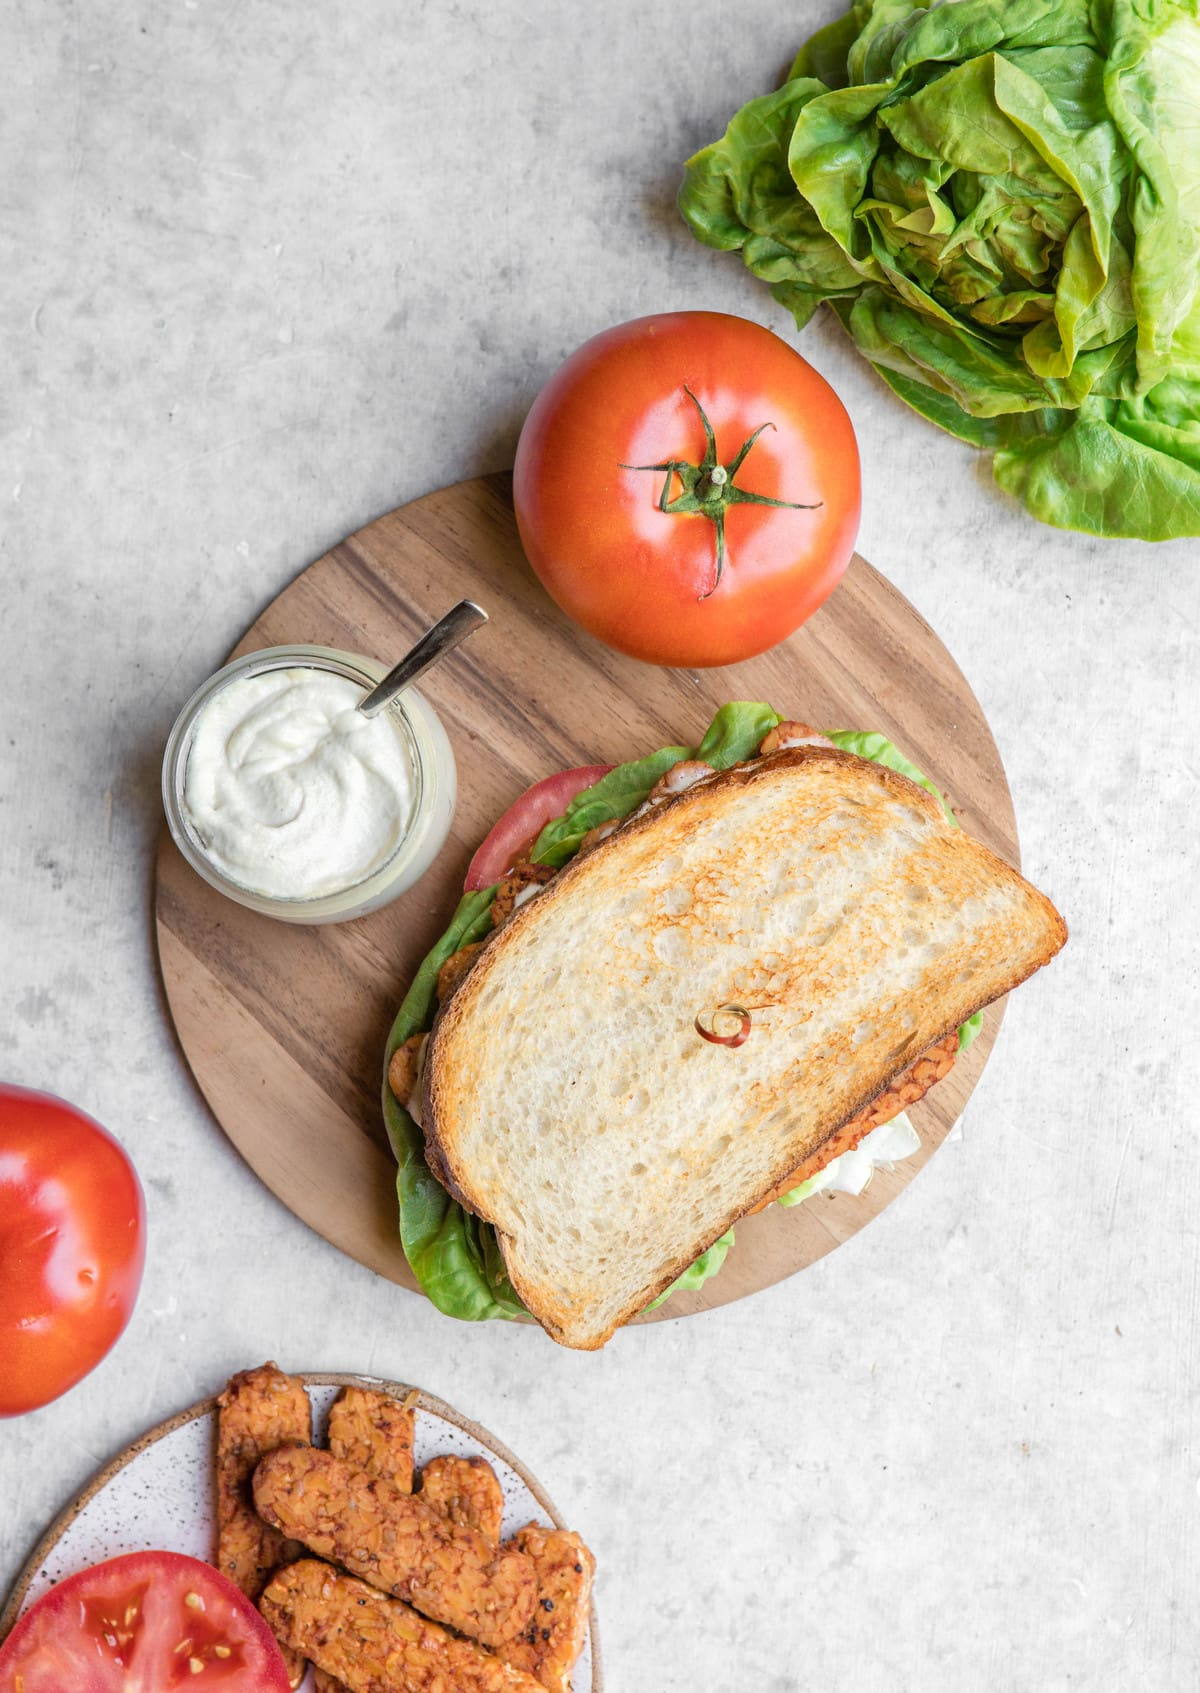 overhead photo of vegan blt on wood cutting board with tomatoes and lettuce on the side